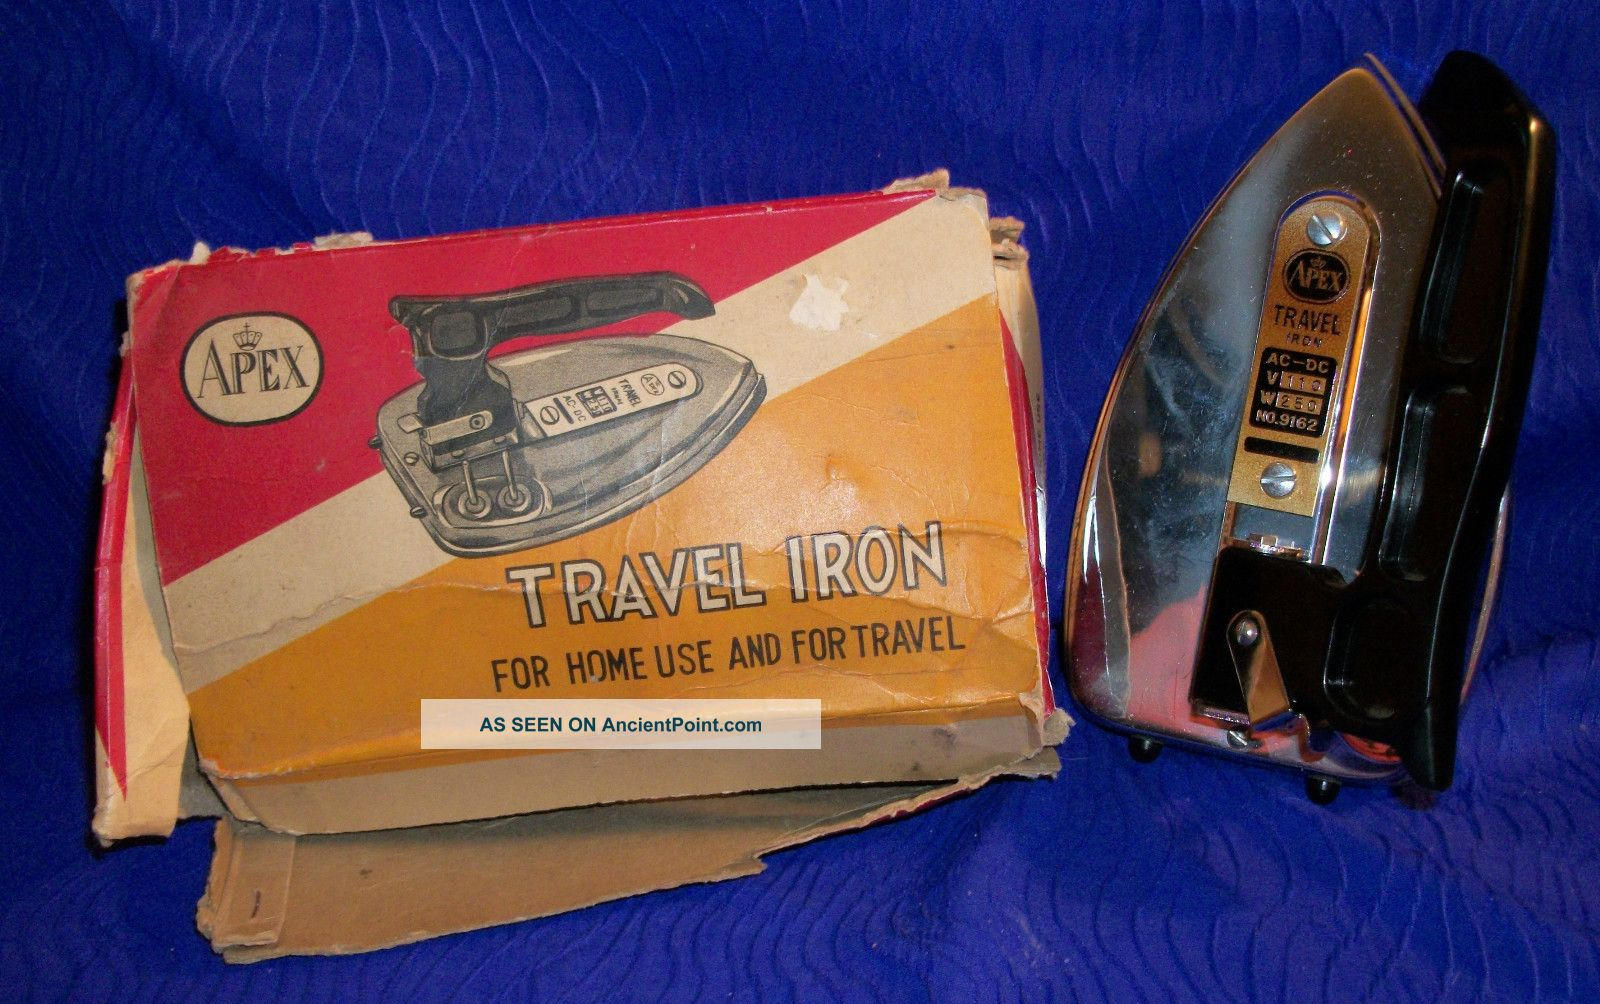 Vintage Travel Iron By Apex Metalware photo